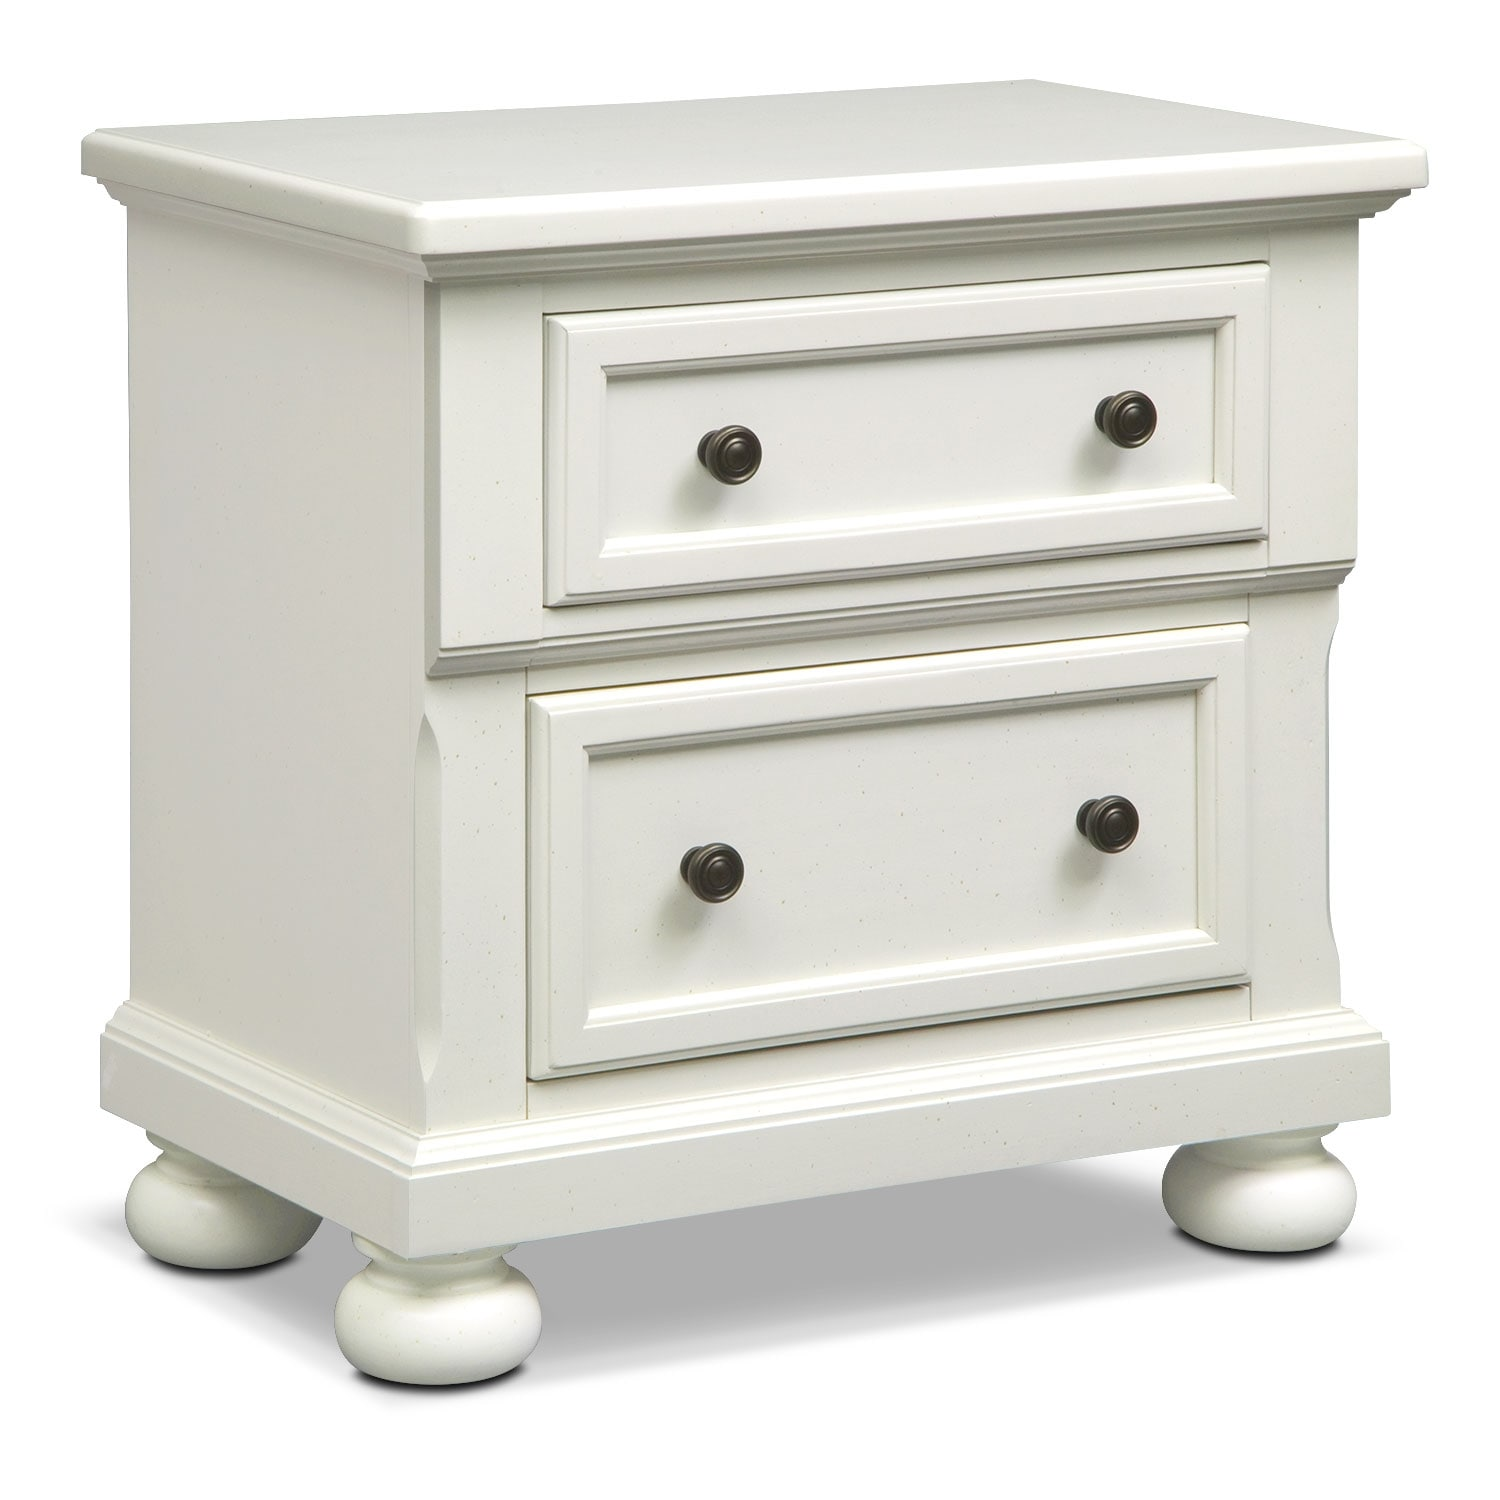 Hanover White Panel Nightstand